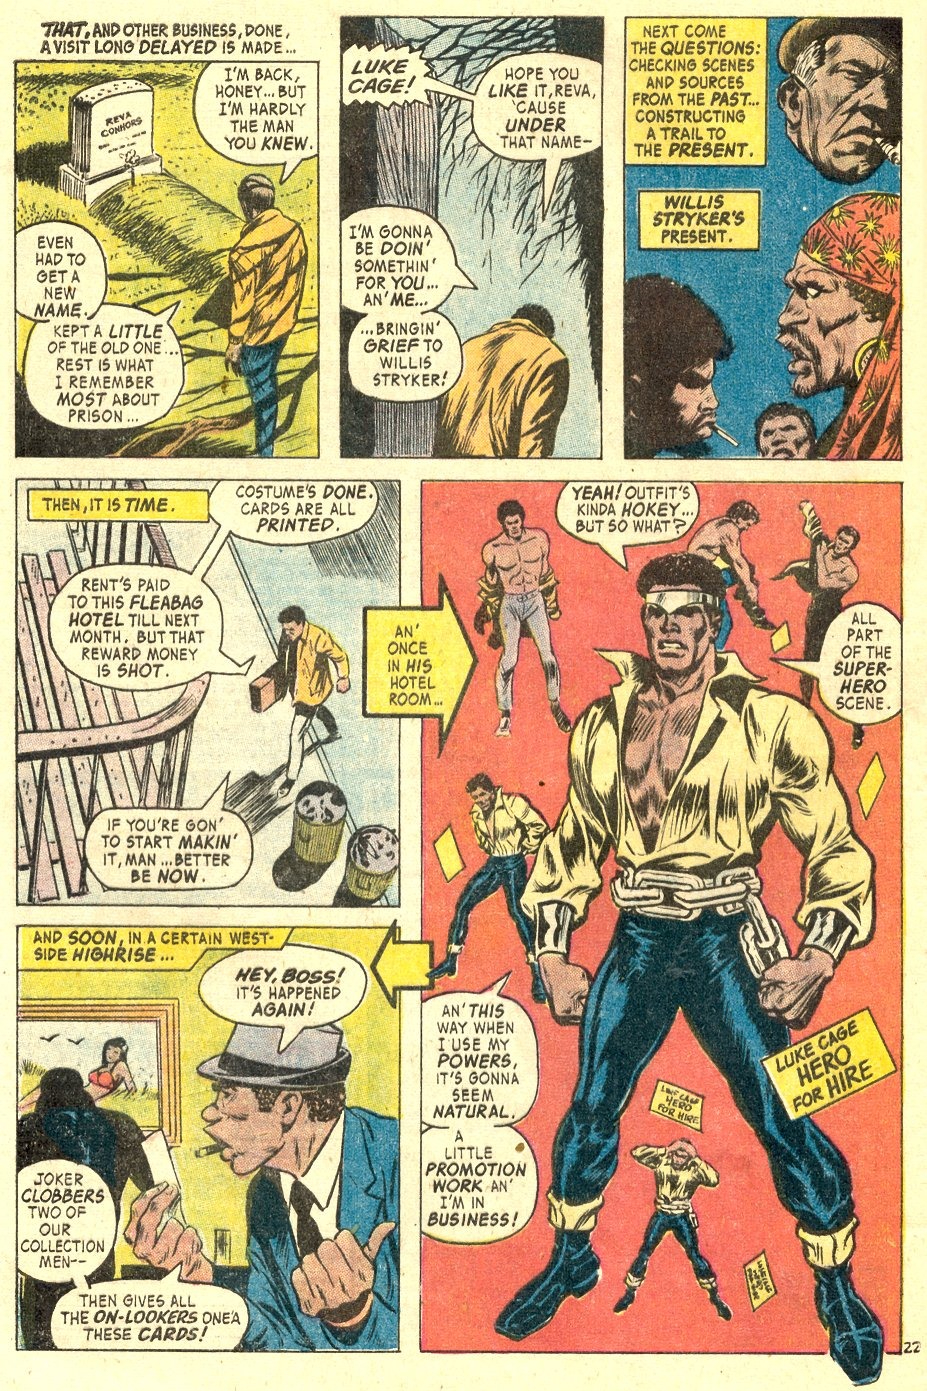 In 'Hero For Hire' (1972) #1, Luke Cage dons his costume and starts Hero For Hire from his hotel room.